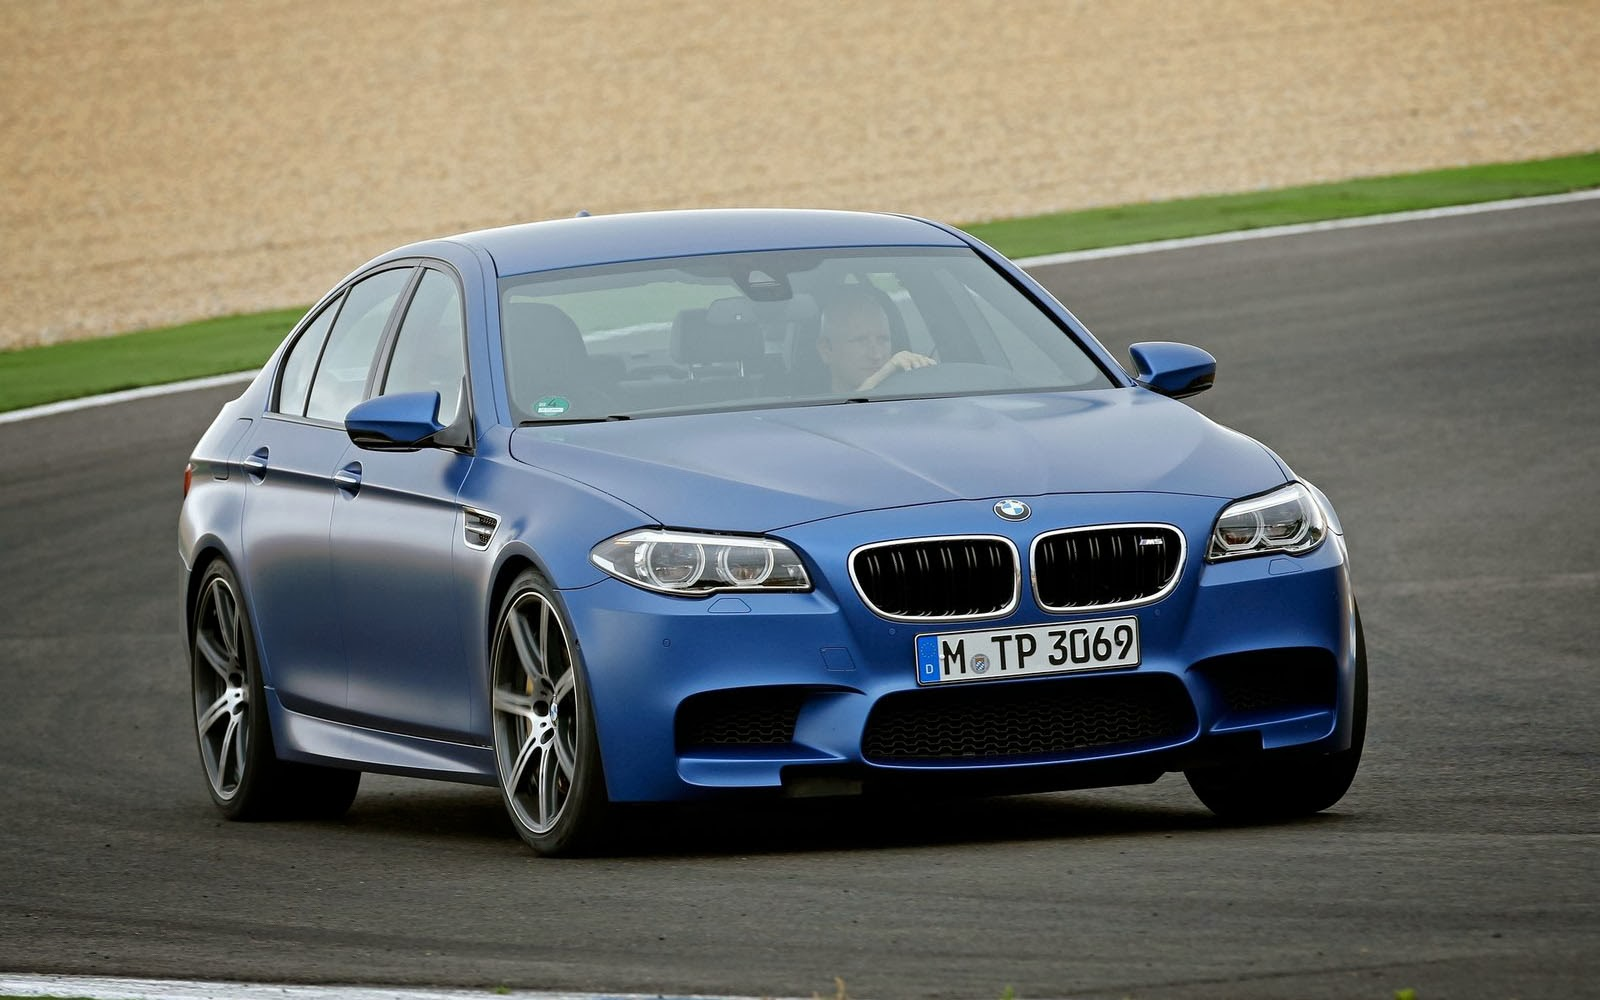 Bmw San Francisco >> wallpapers: BMW M5 2014 Wallpapers